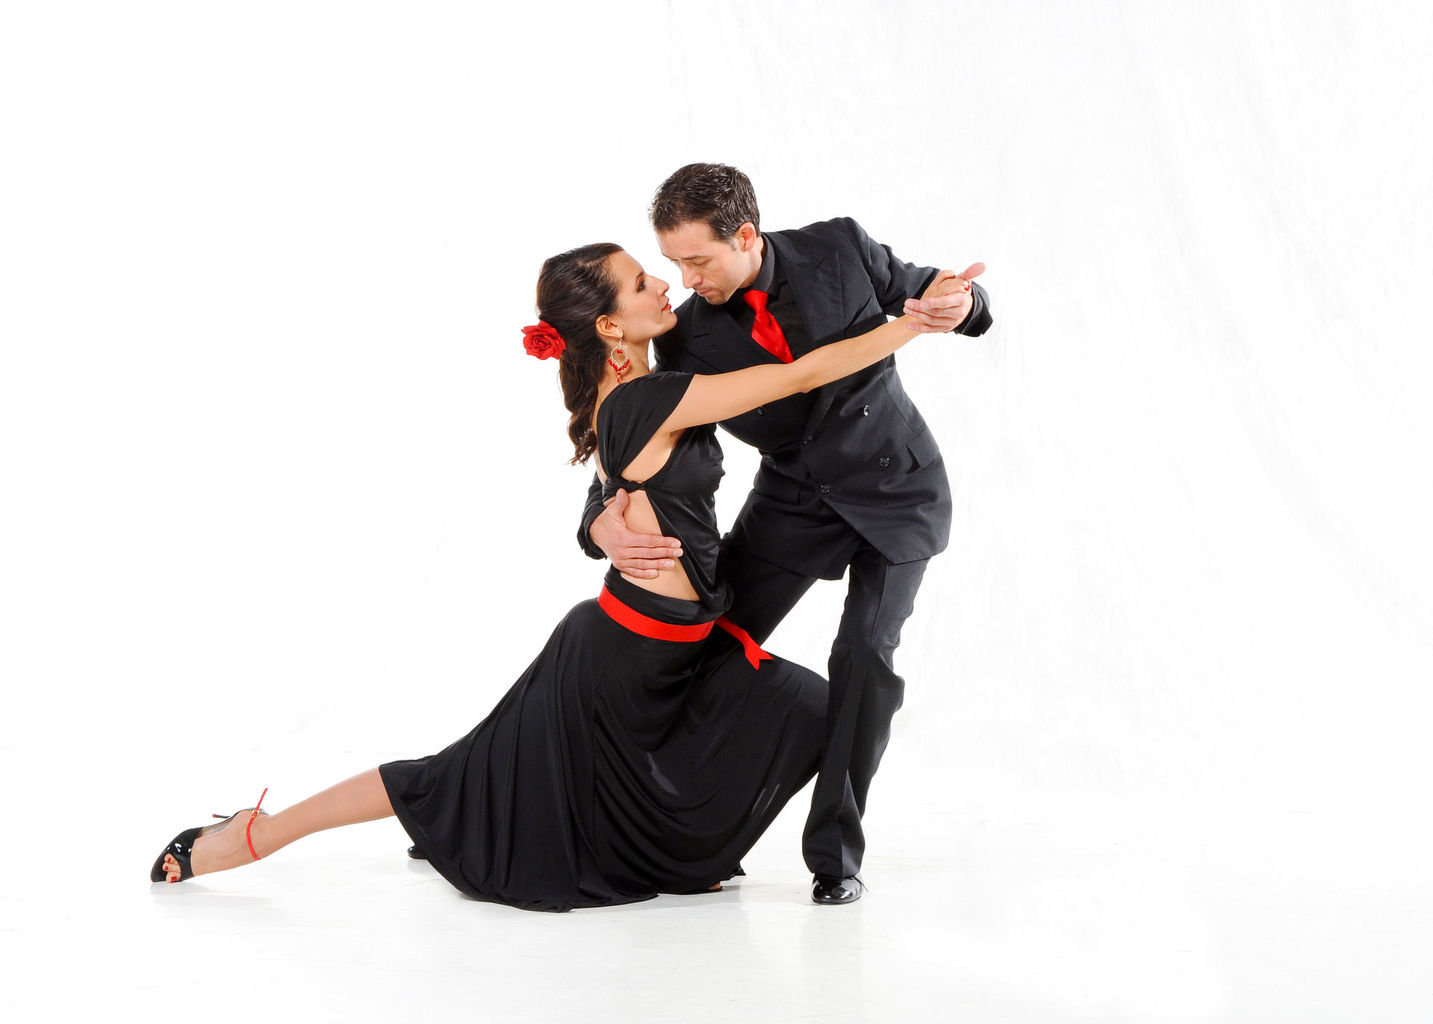 Argentina home jersey - Argentine Tango Show Dance Professionals In New York And